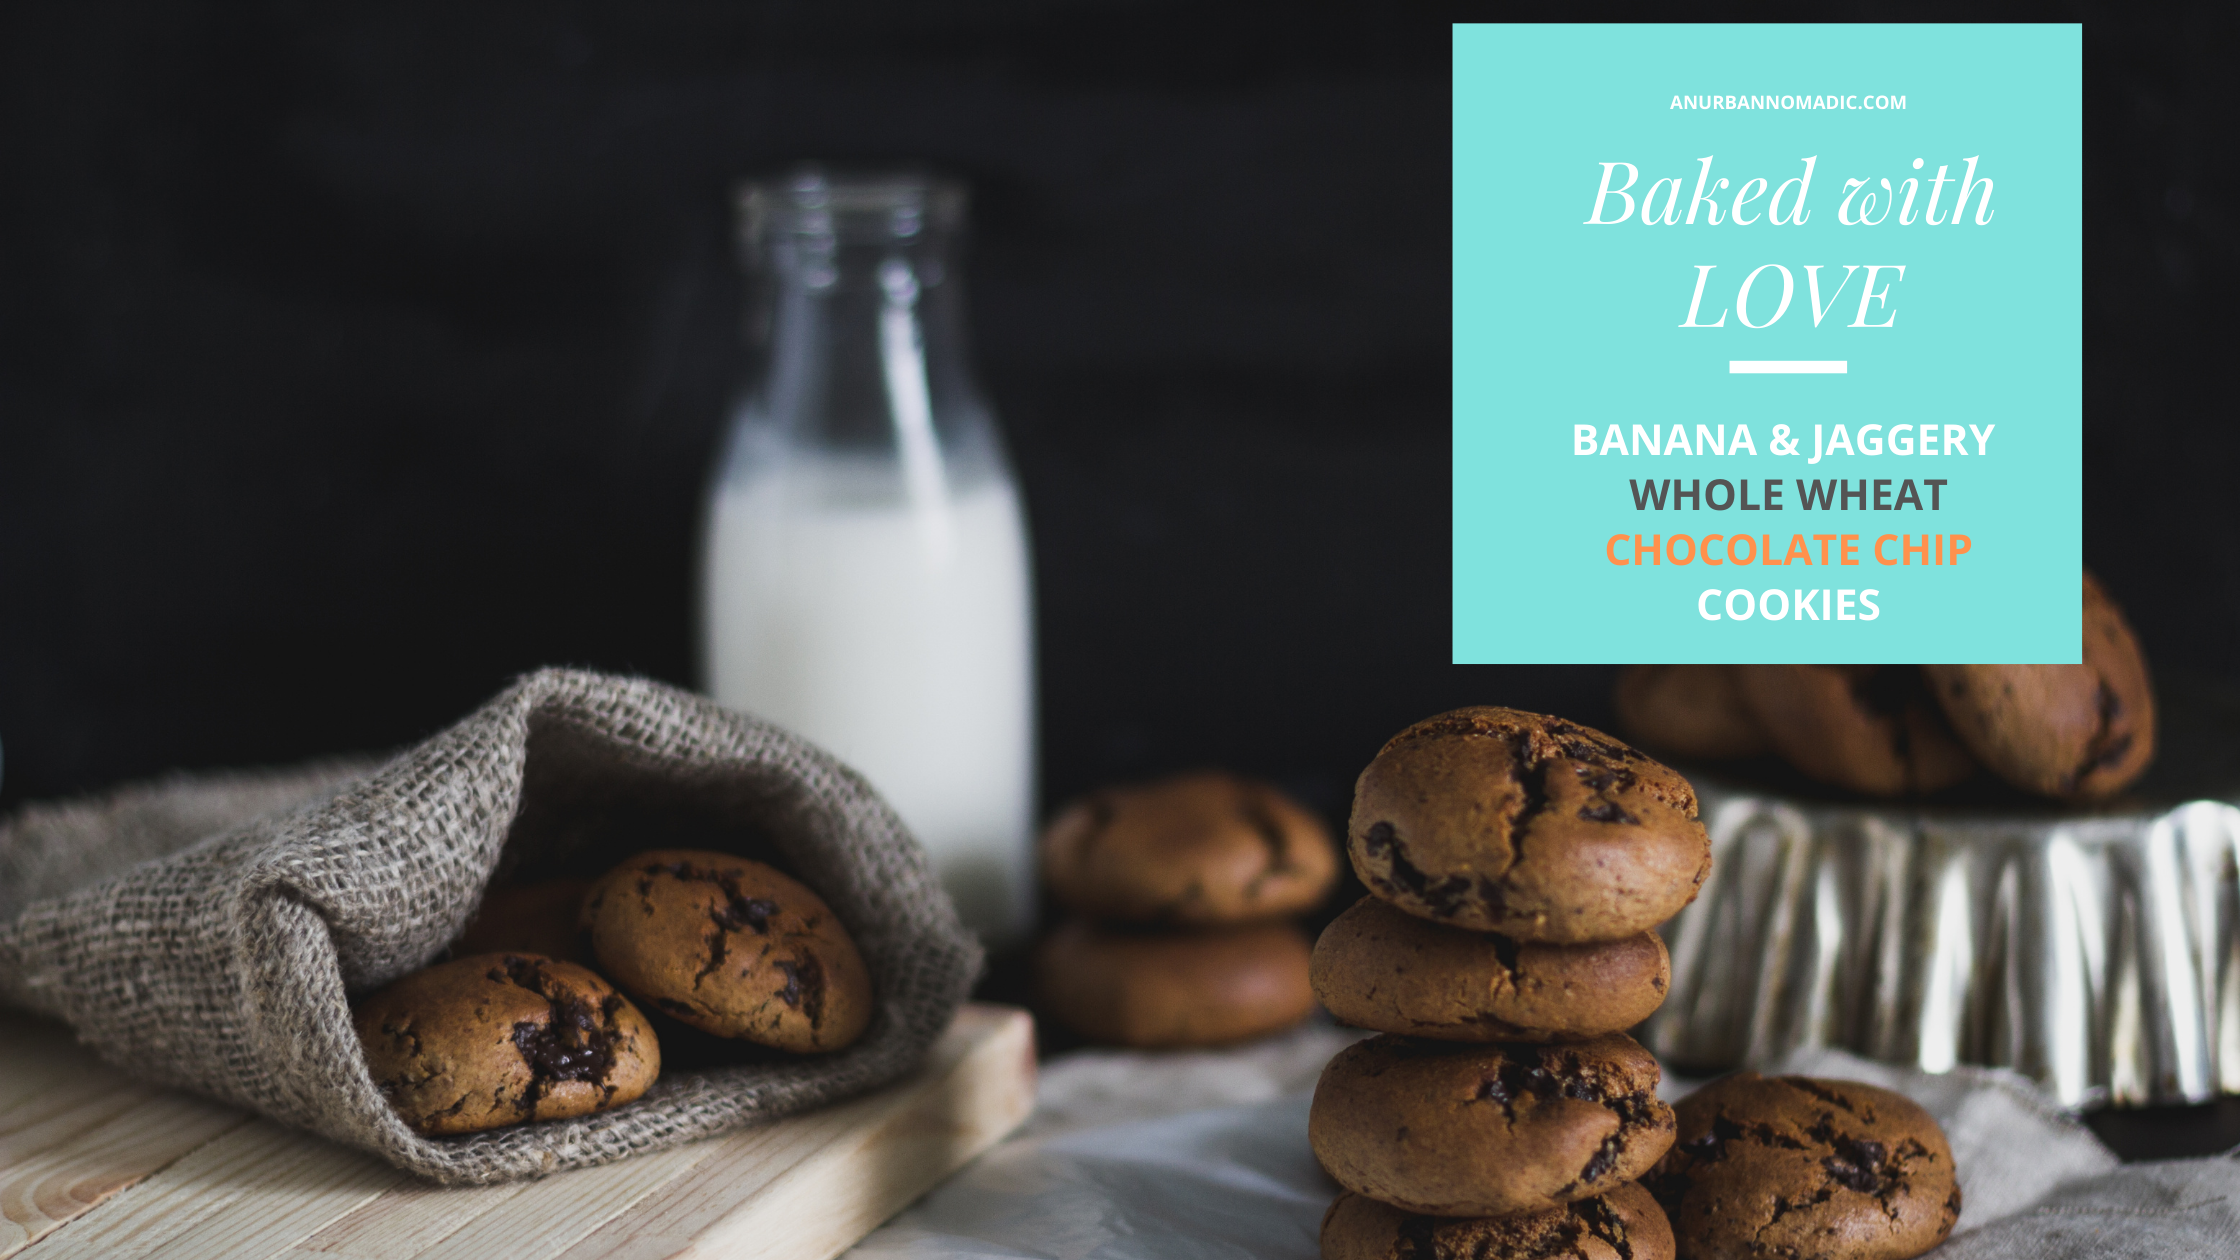 Banana and Jaggery Chocolate Chip Cookies